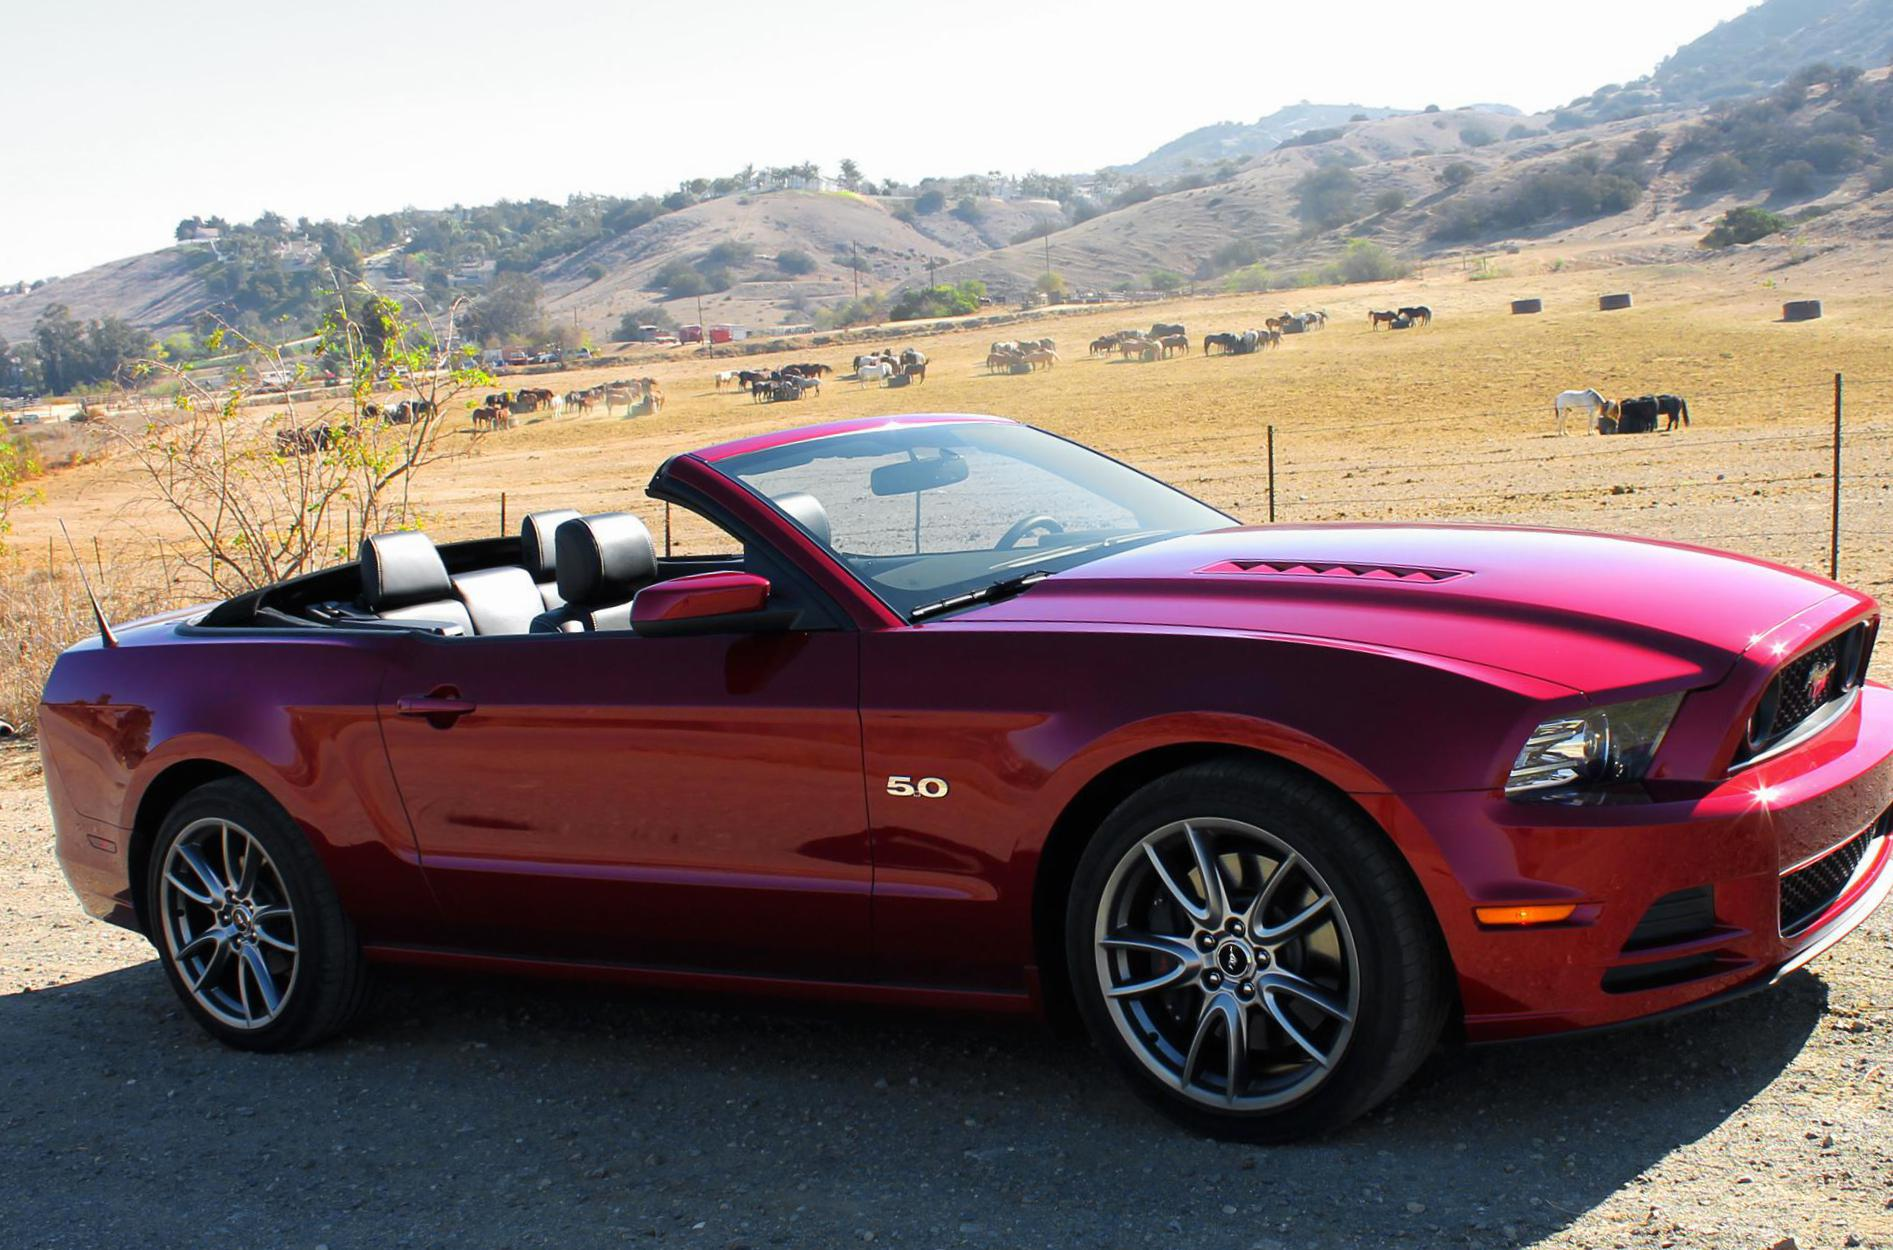 Mustang Convertible Ford model hatchback